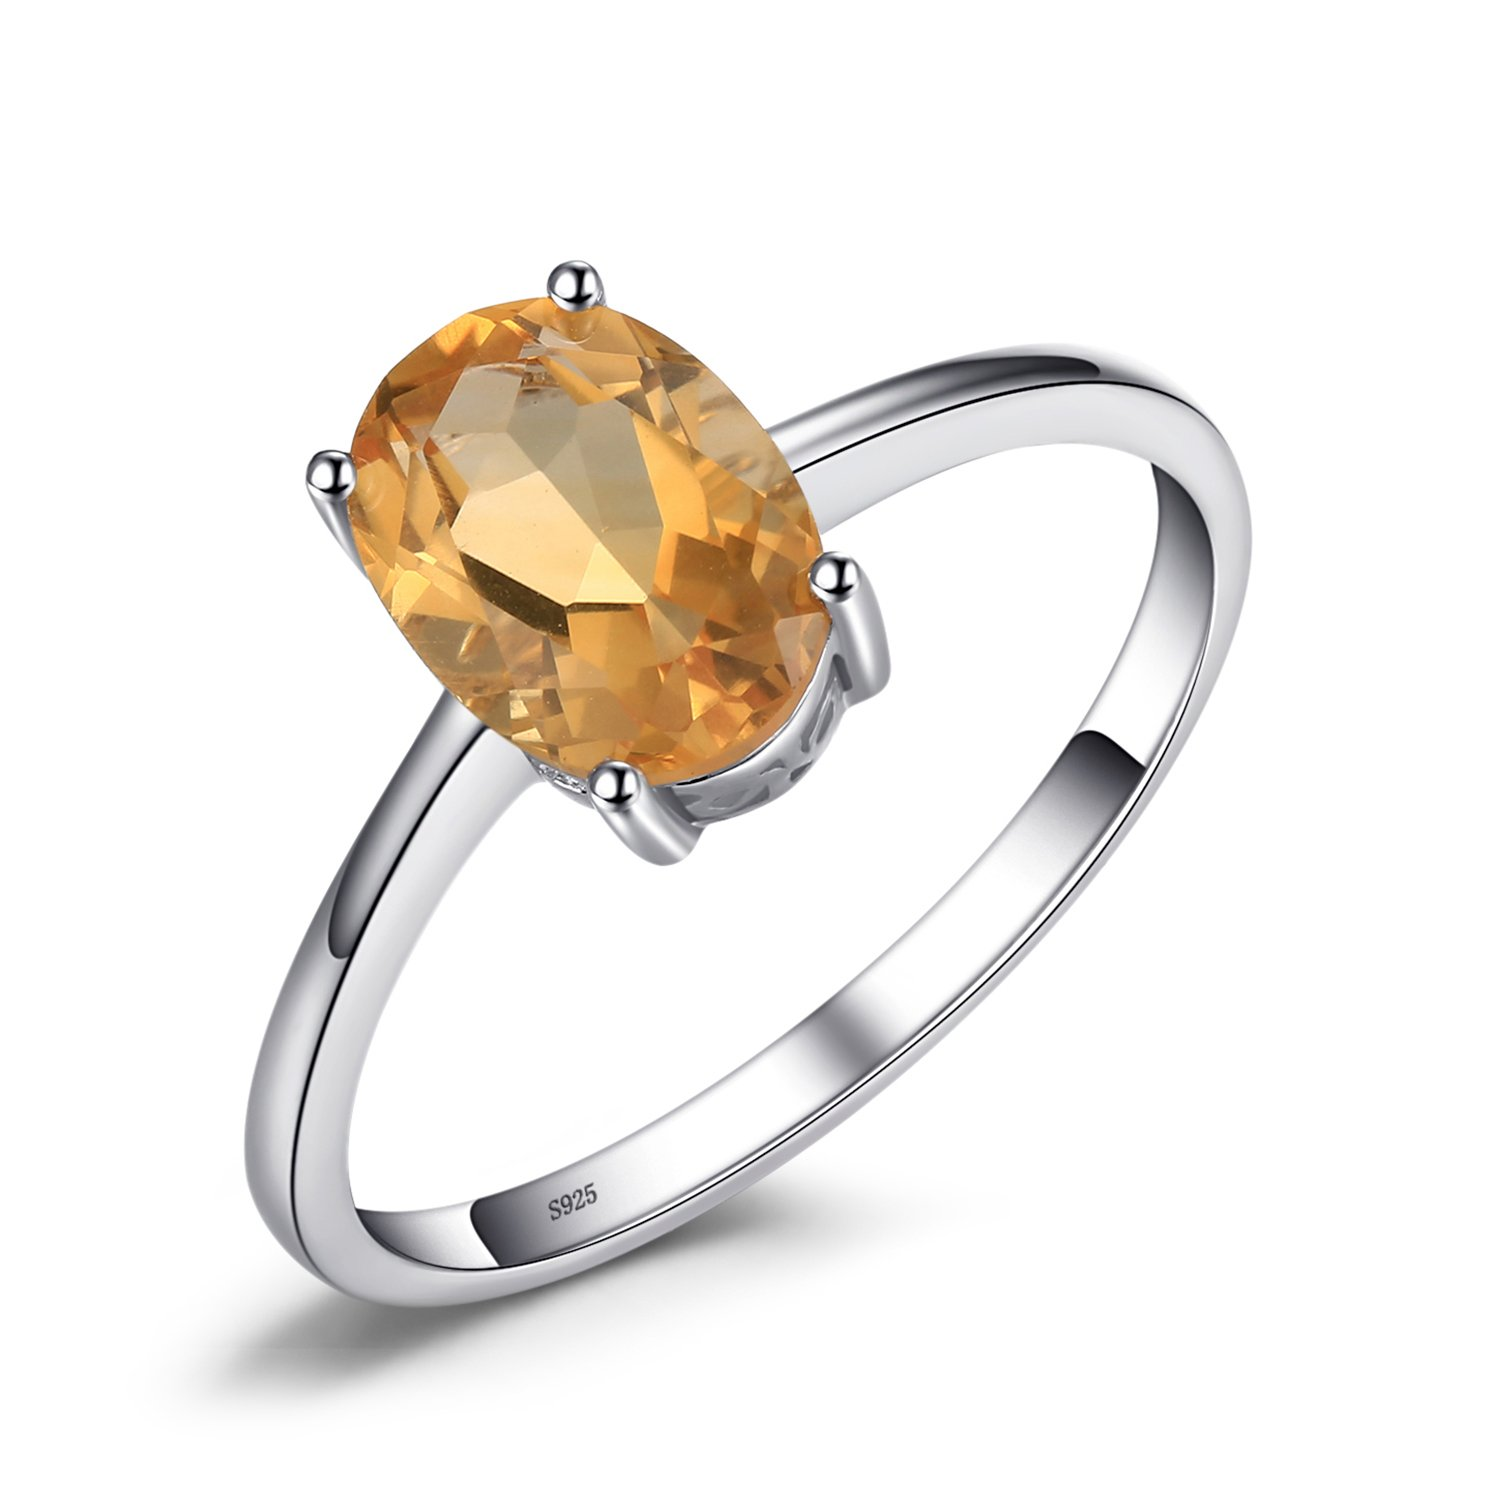 JewelryPalace Oval Natural Amethyst Citrine Garnet Peridot Topaz Birthstone Solitaire Ring Solid 925 Sterling Silver CA-158JR